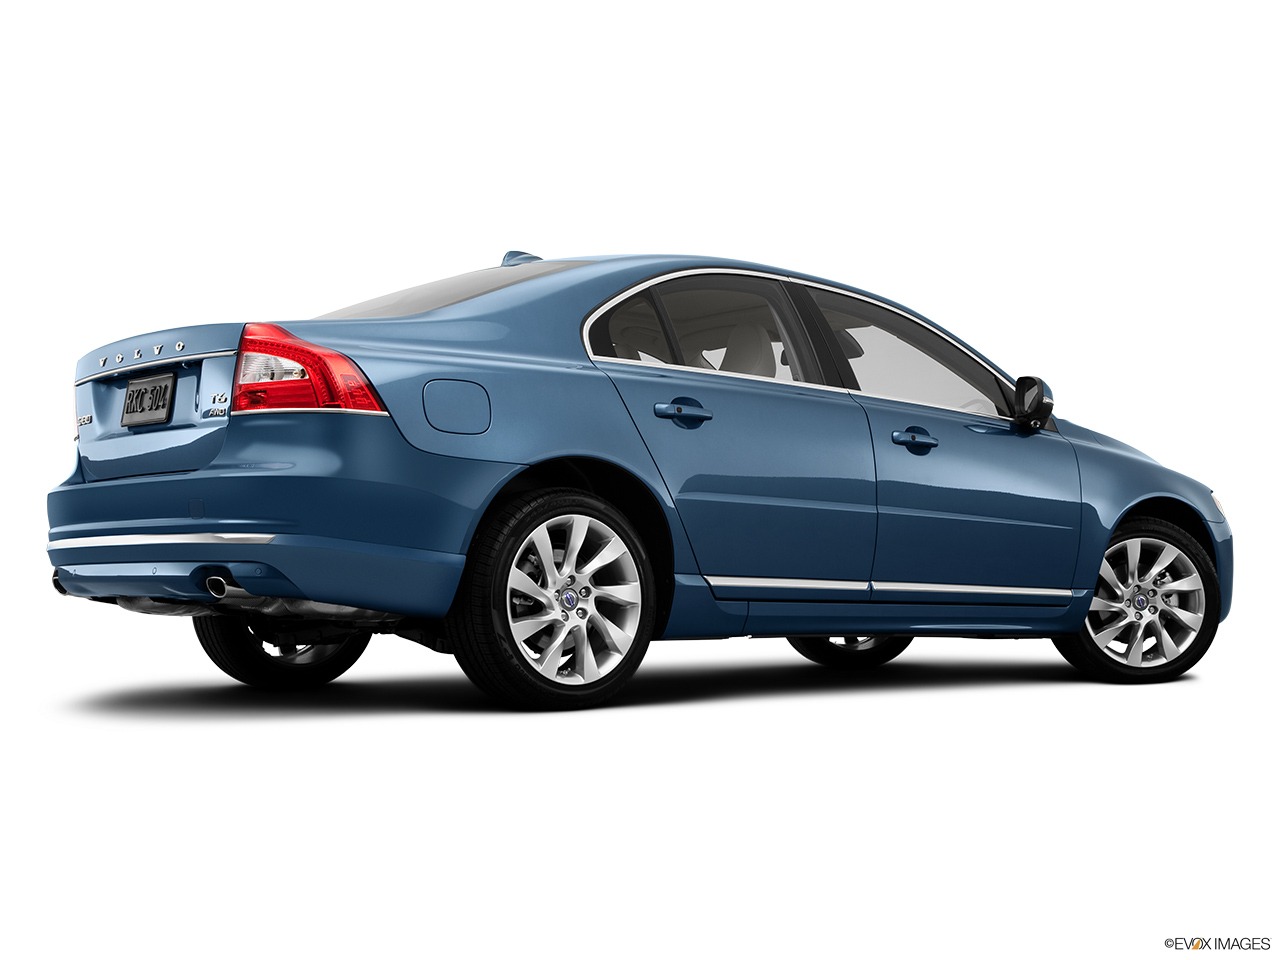 2014 Volvo S80 T6 AWD Platinum Low/wide rear 5/8.